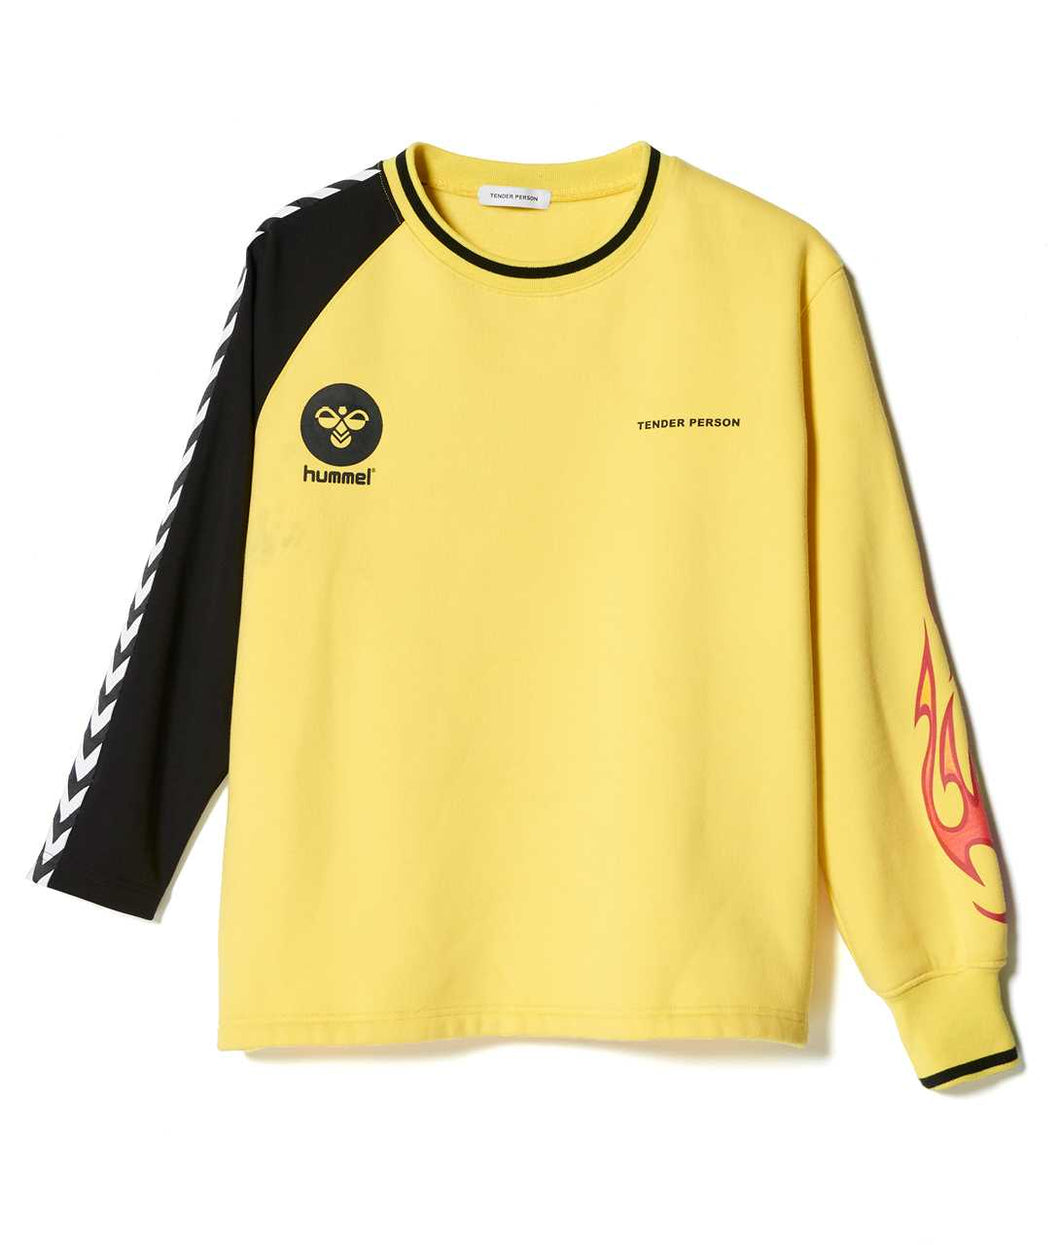 〈TENDER PERSON〉SPORTS JARSEY&SWEAT / hummelコラボ ジャージースウェット (YELLOW)